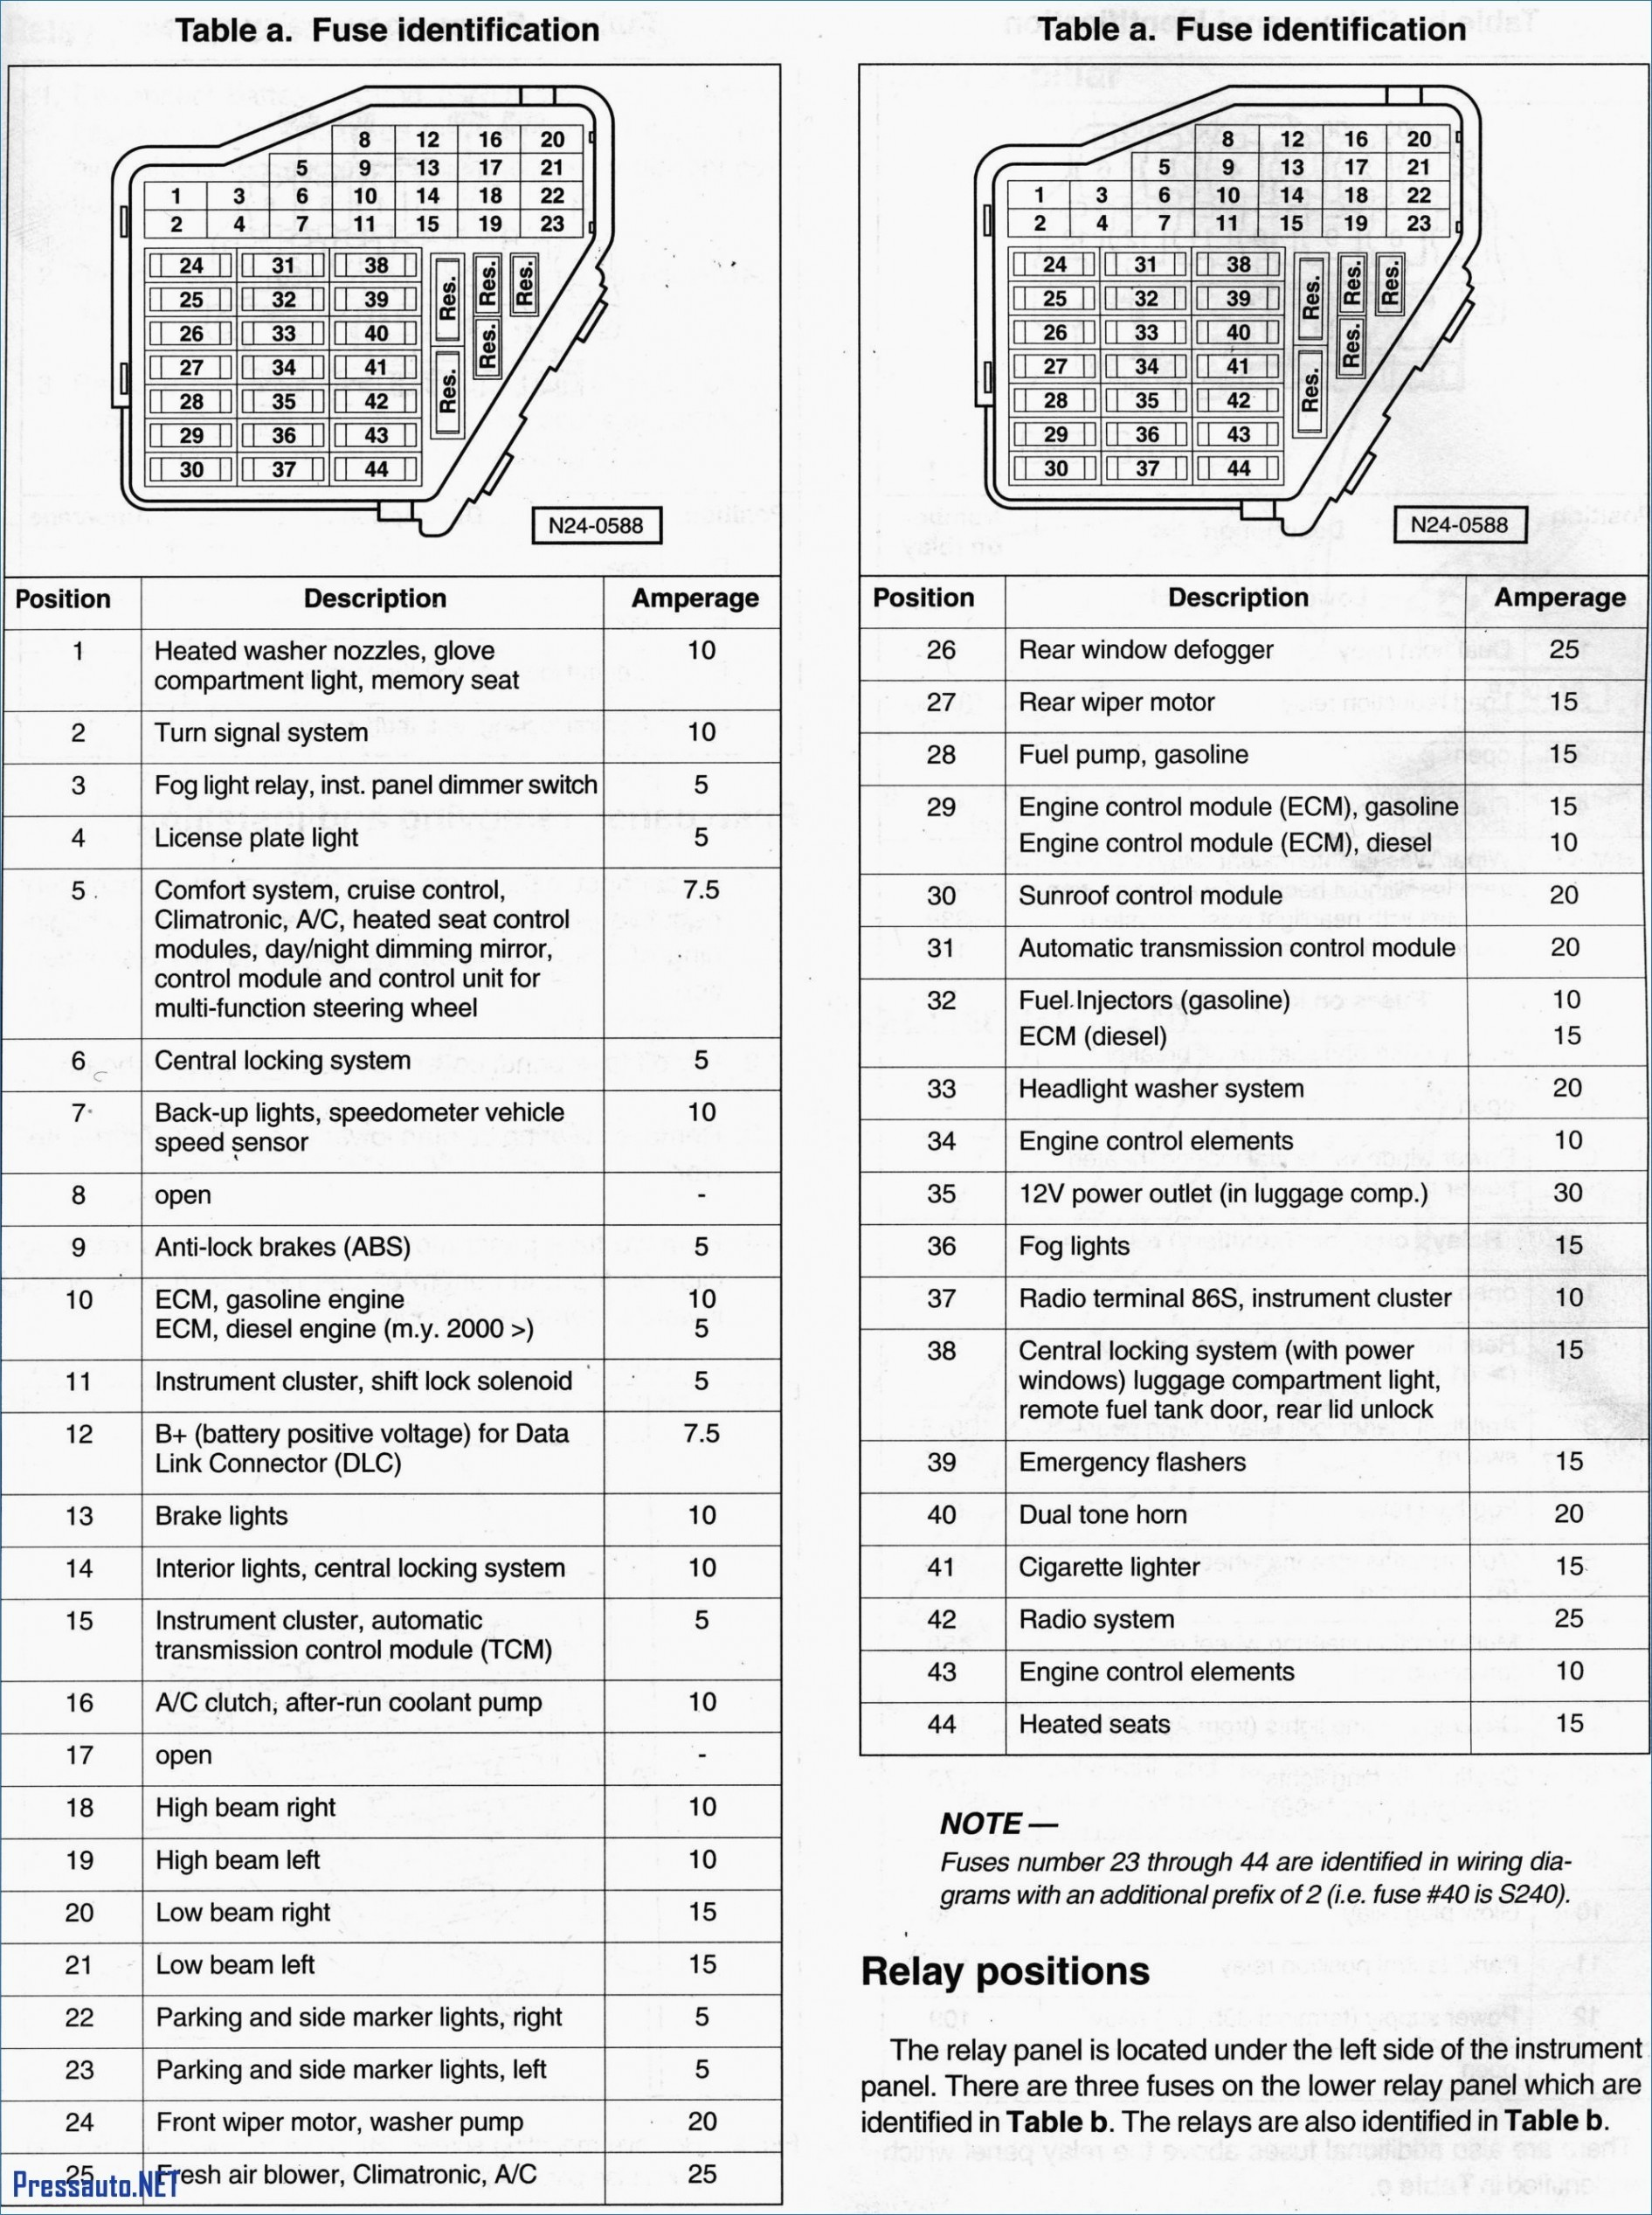 2000 Audi Tt Fuse Box - Home Wiring Diagram poised-grand -  poised-grand.rossileautosrl.it | Audi Tt Fuse Box Mk2 |  | poised-grand.rossileautosrl.it